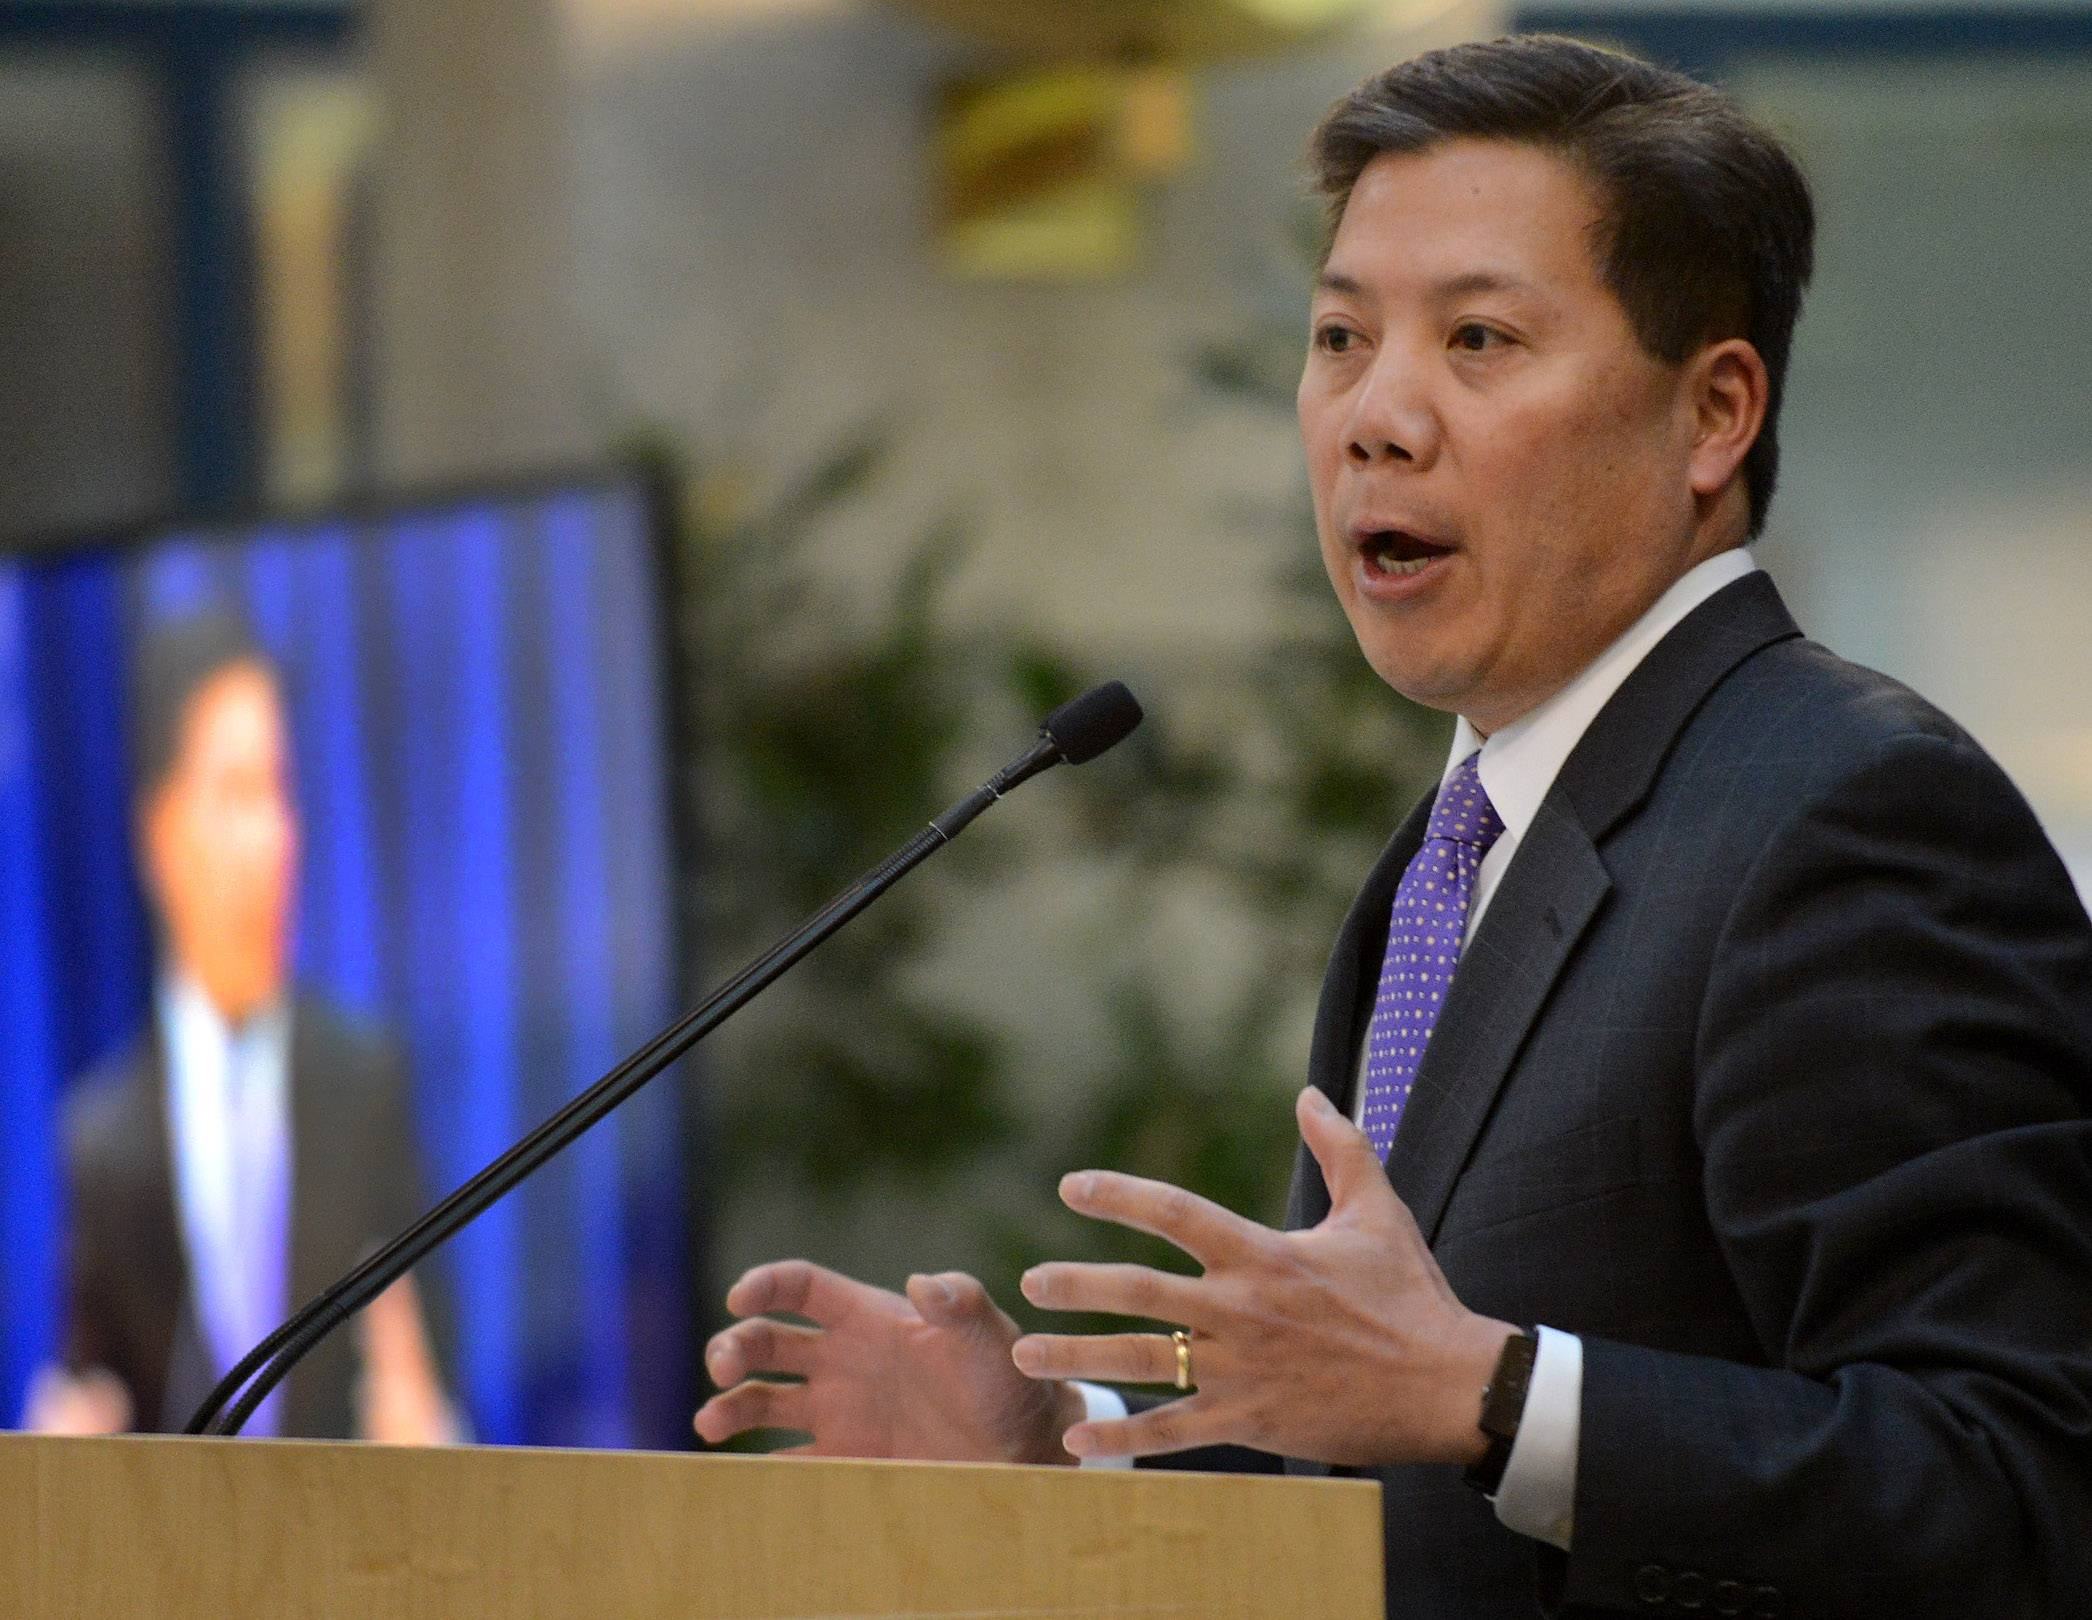 U.S. Deputy Secretary of Labor Chris Lu helps launch a new partnership Tuesday between Schaumburg-based Zurich America and Harper College in Palatine.